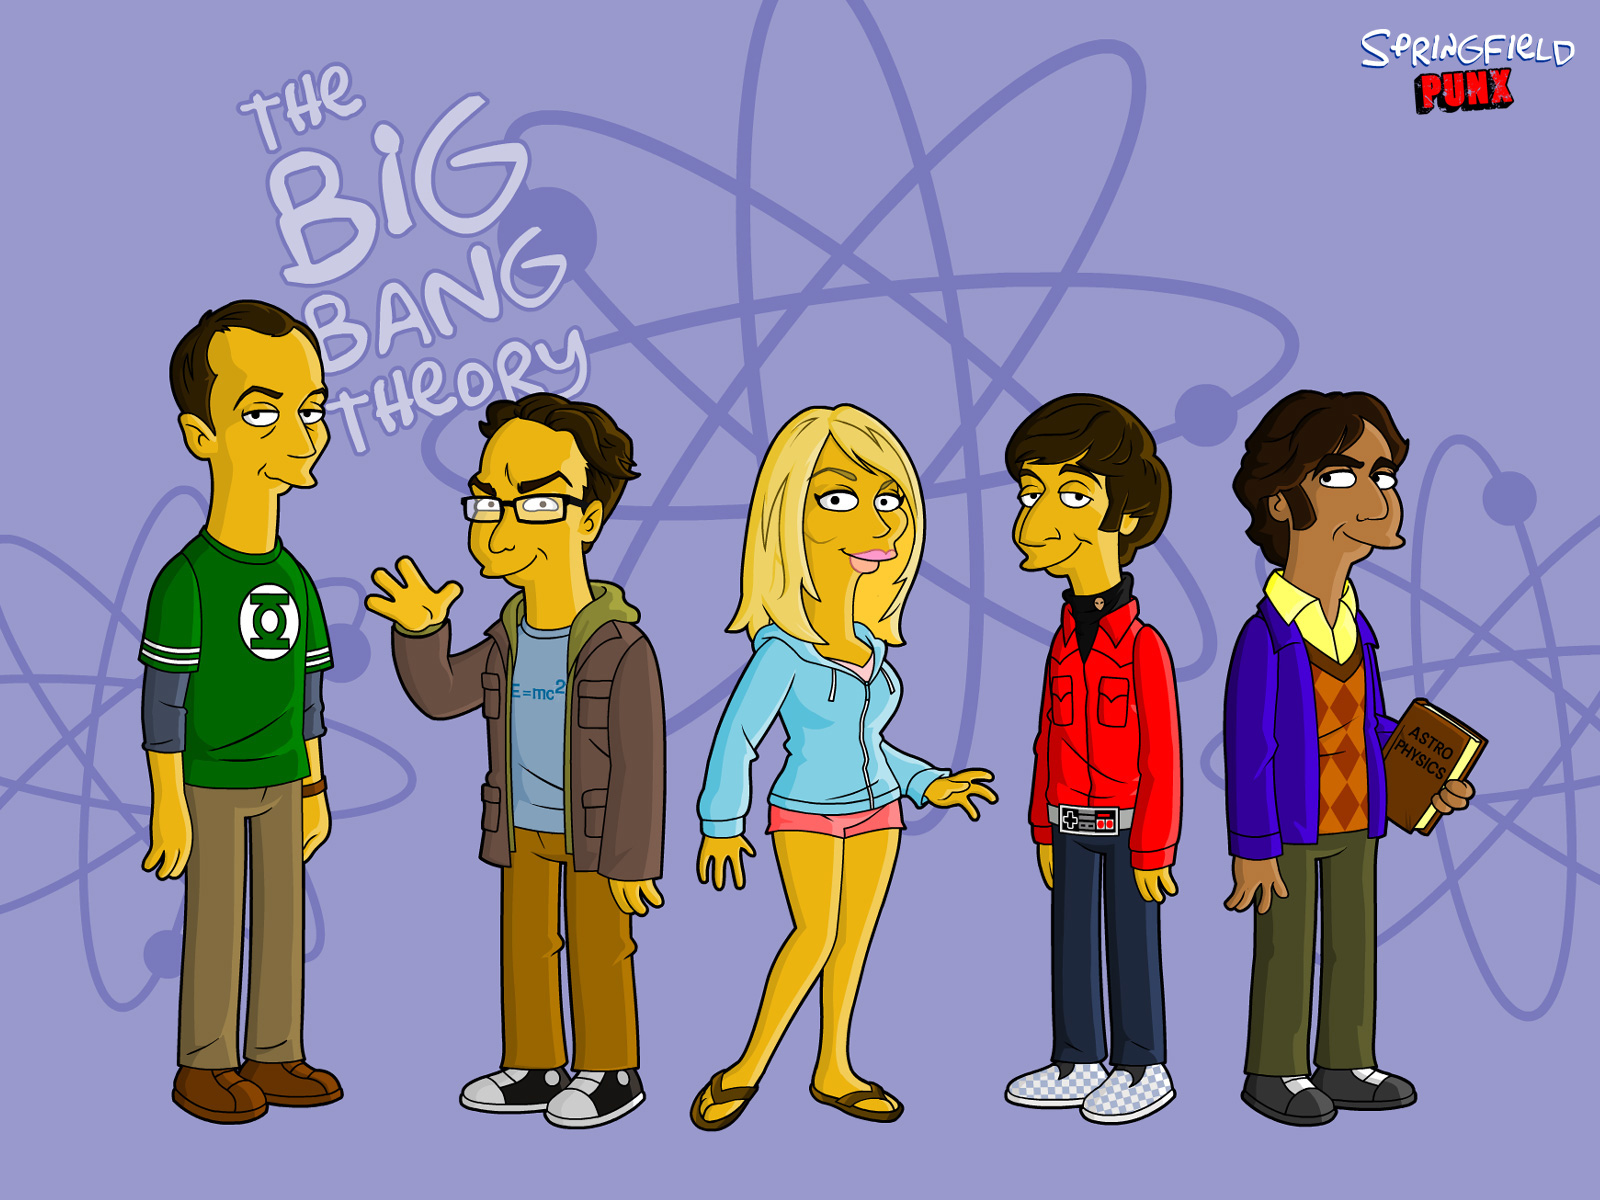 Springfield Punx The Big Bang Theory Wallpaper